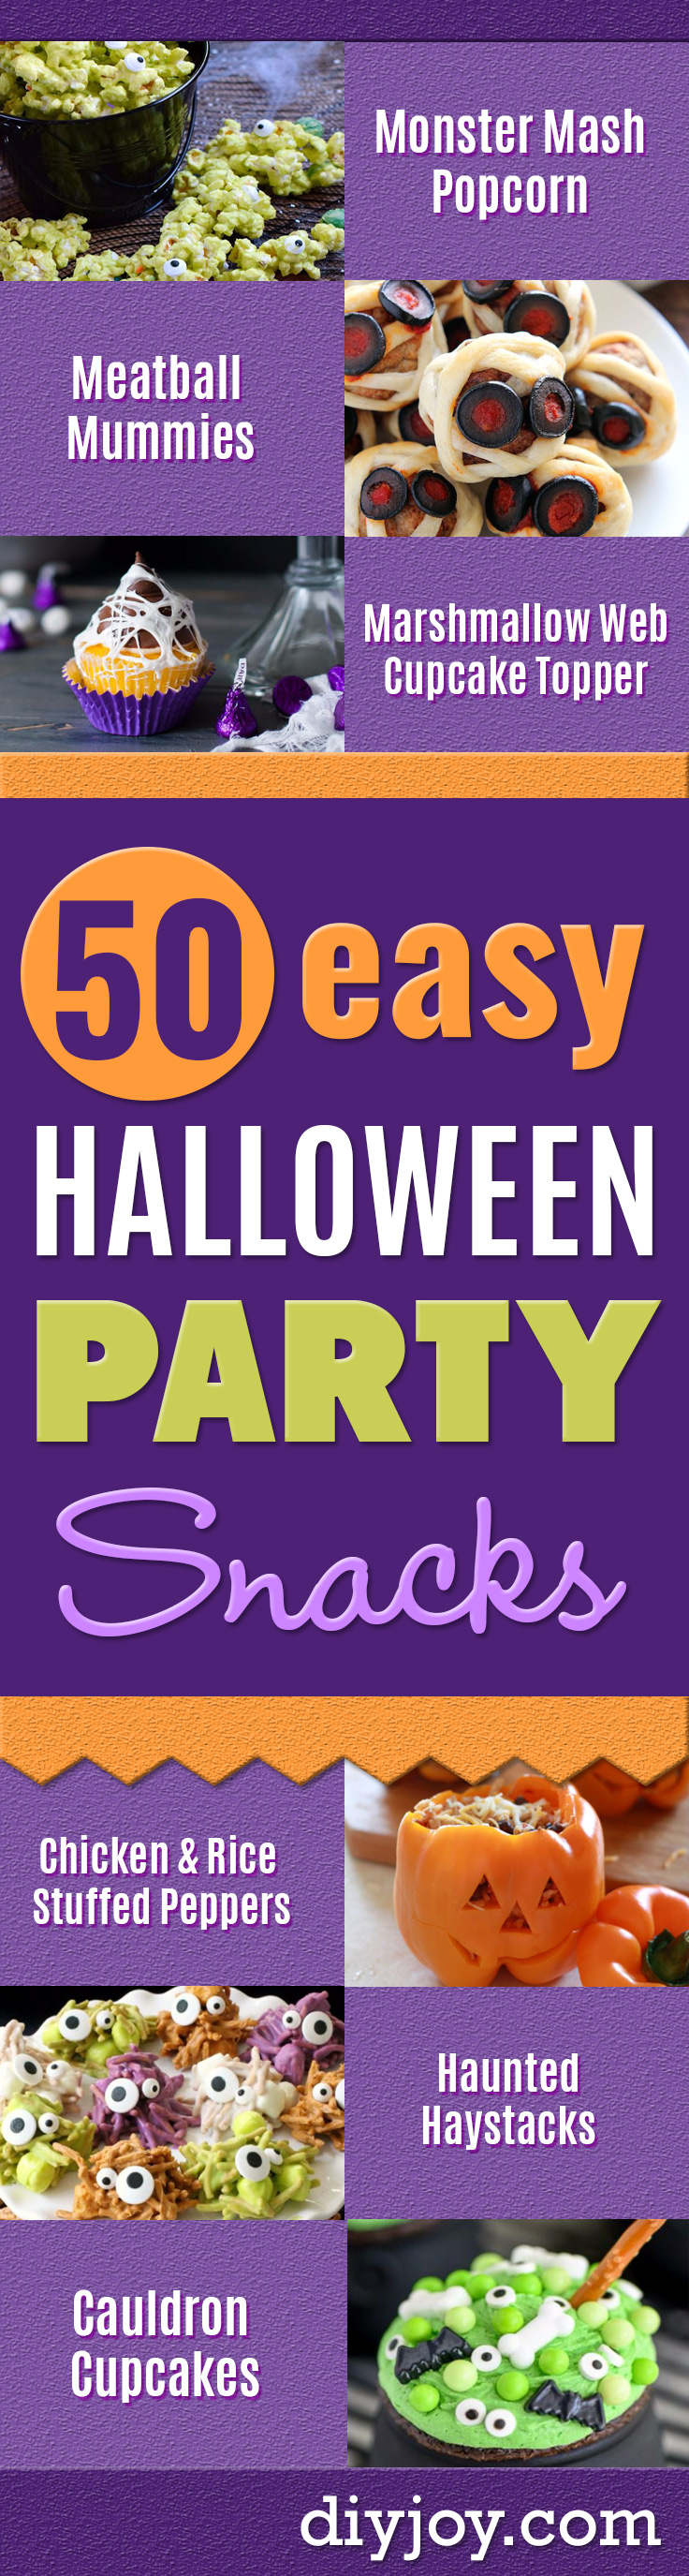 50 Halloween Party Snacks-8863